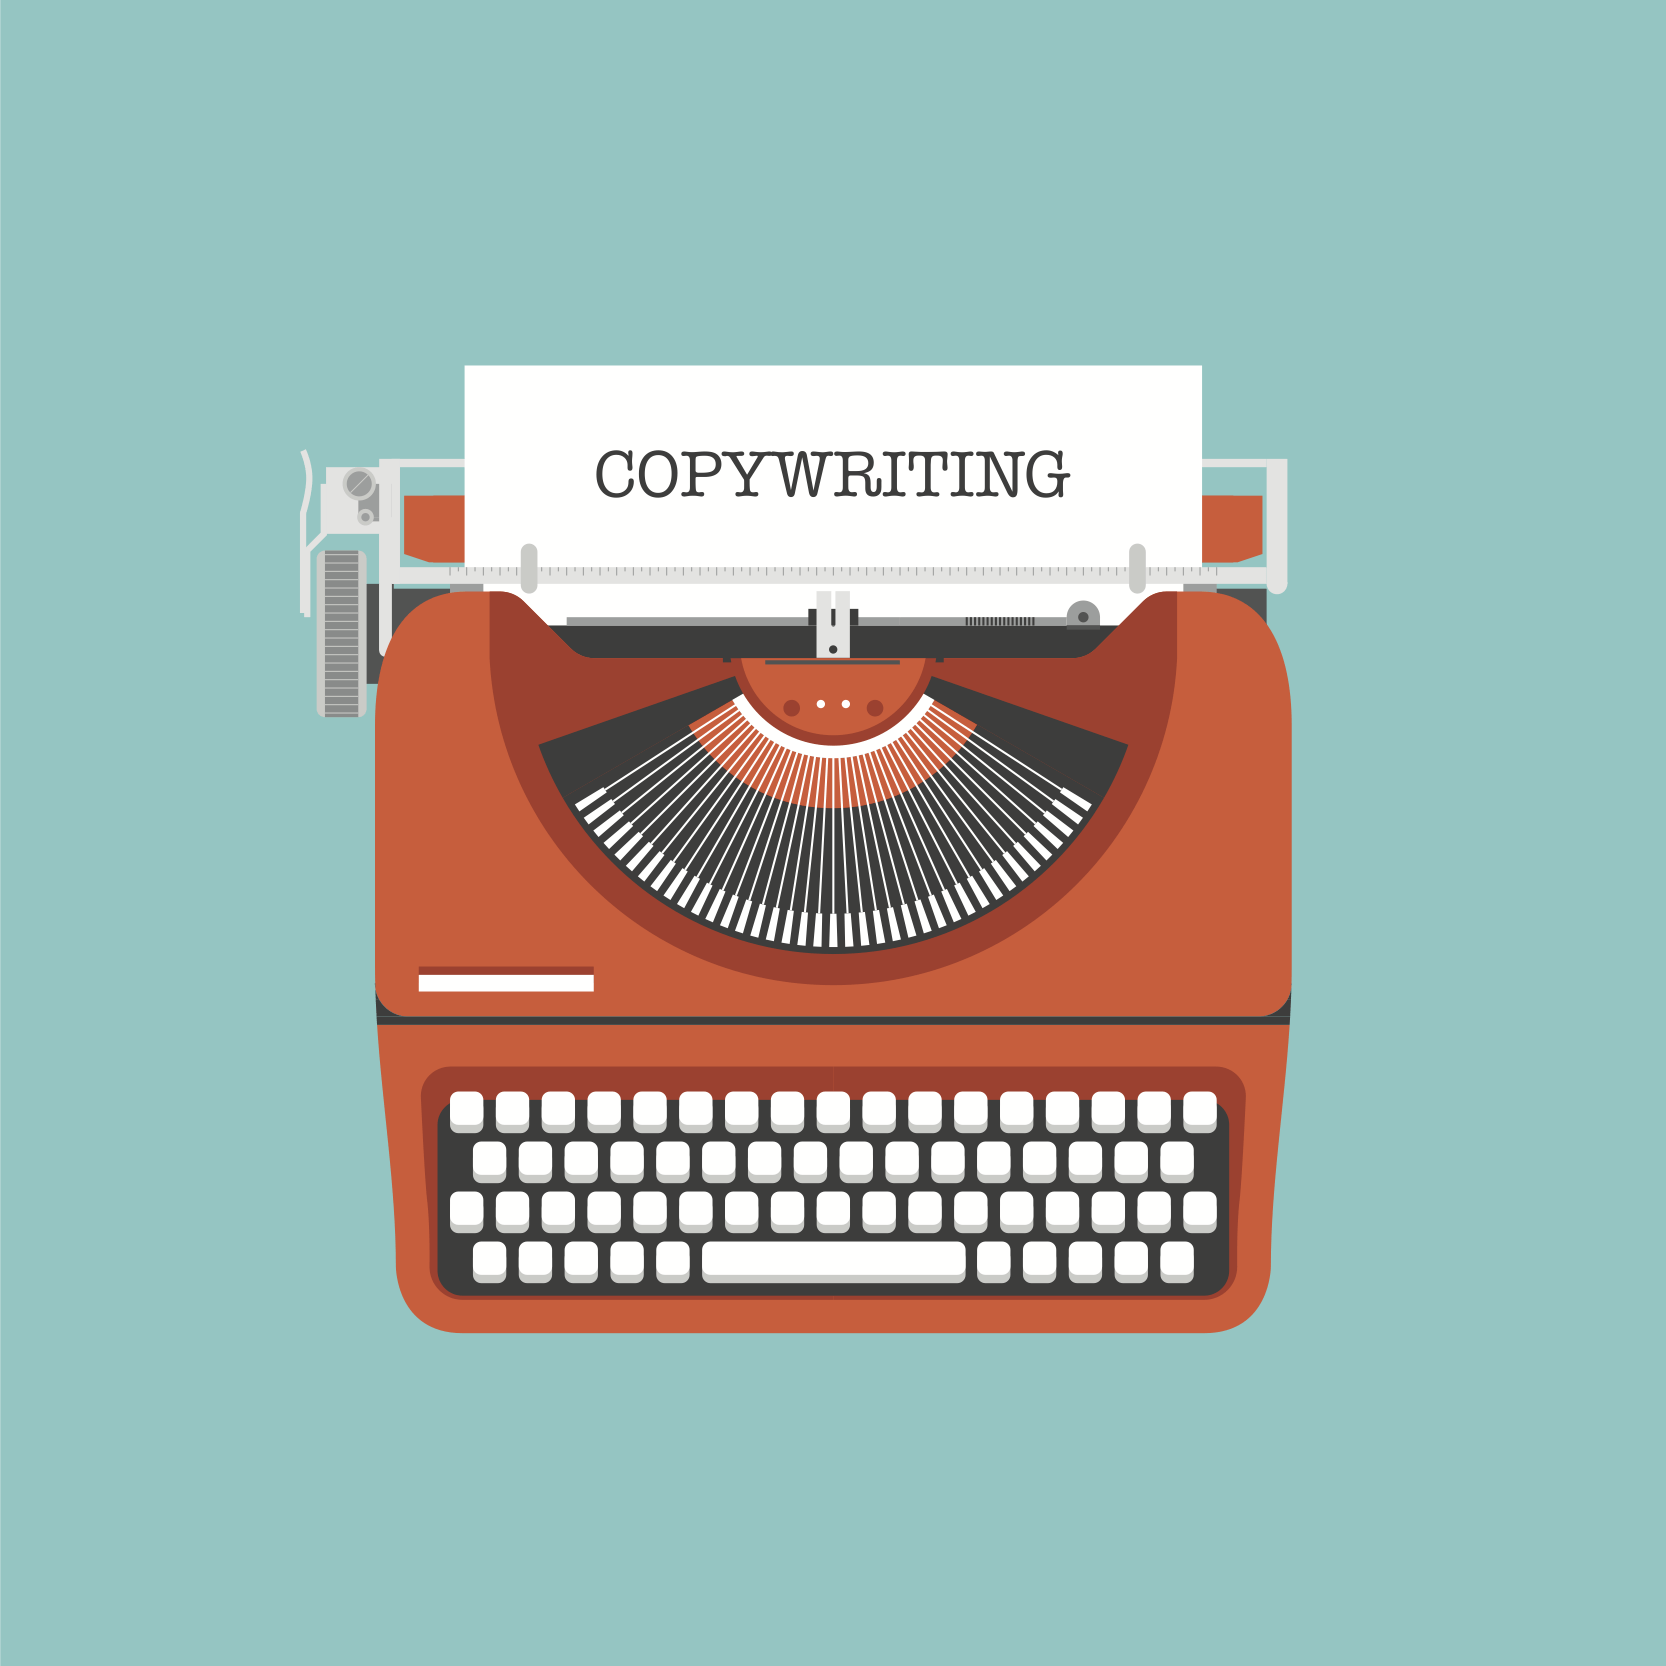 55 SEO Copywriting Tips for Rocking Content | Writtent